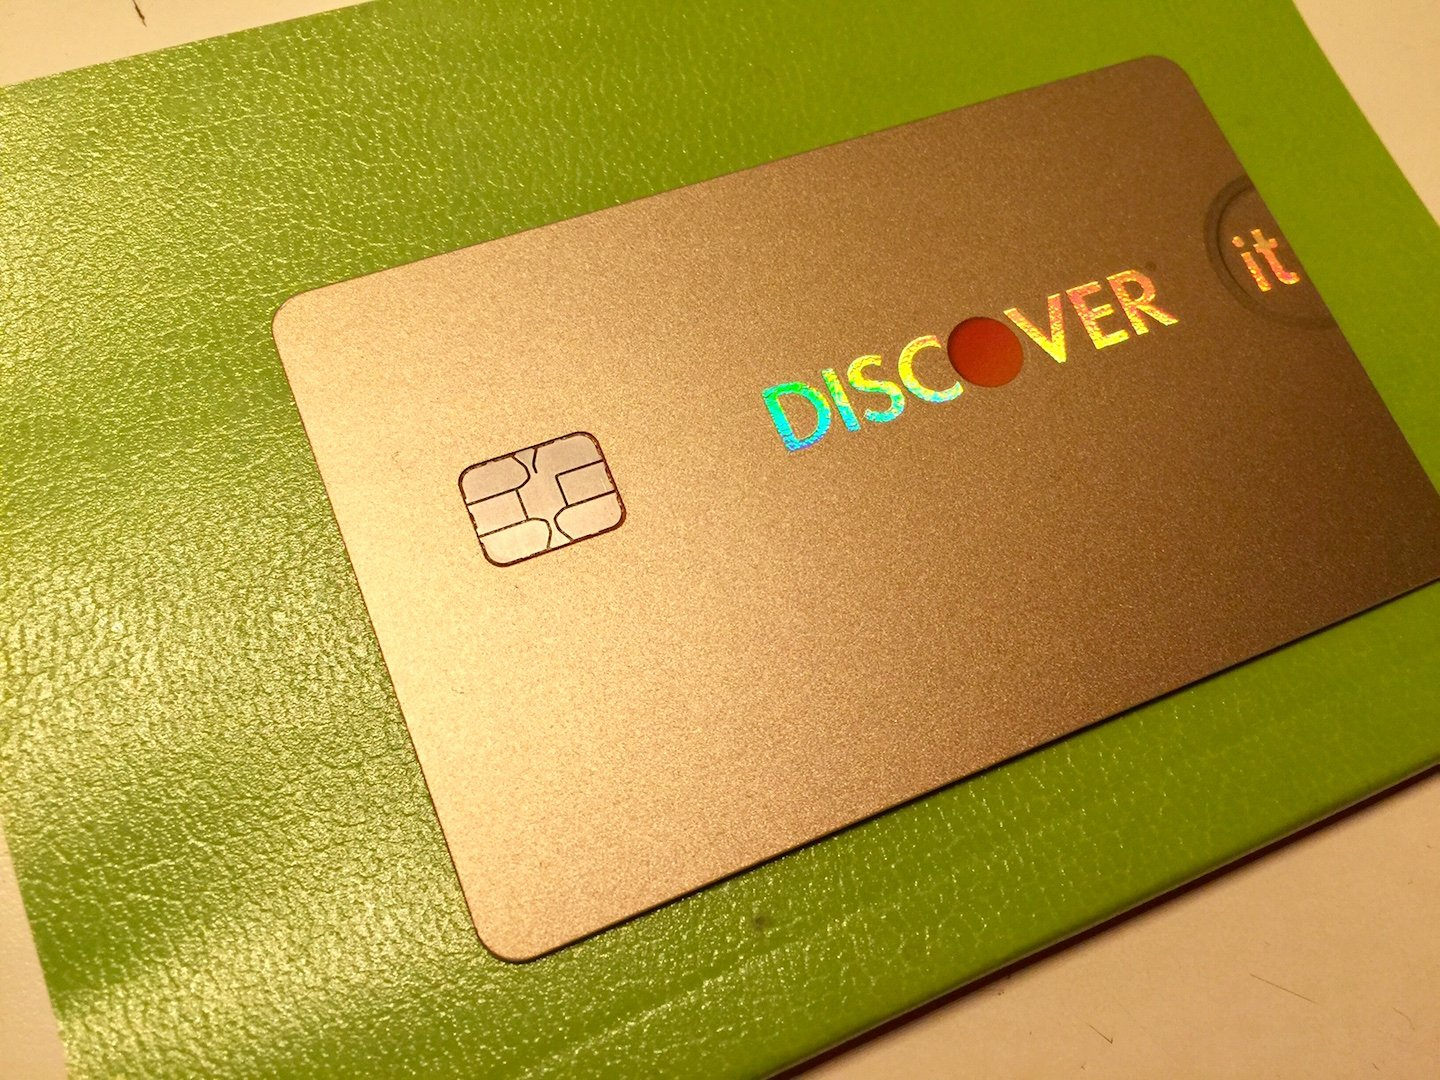 Discover Card Design Options Lovely New Discover Gold Design Updated with Pics Myfico forums